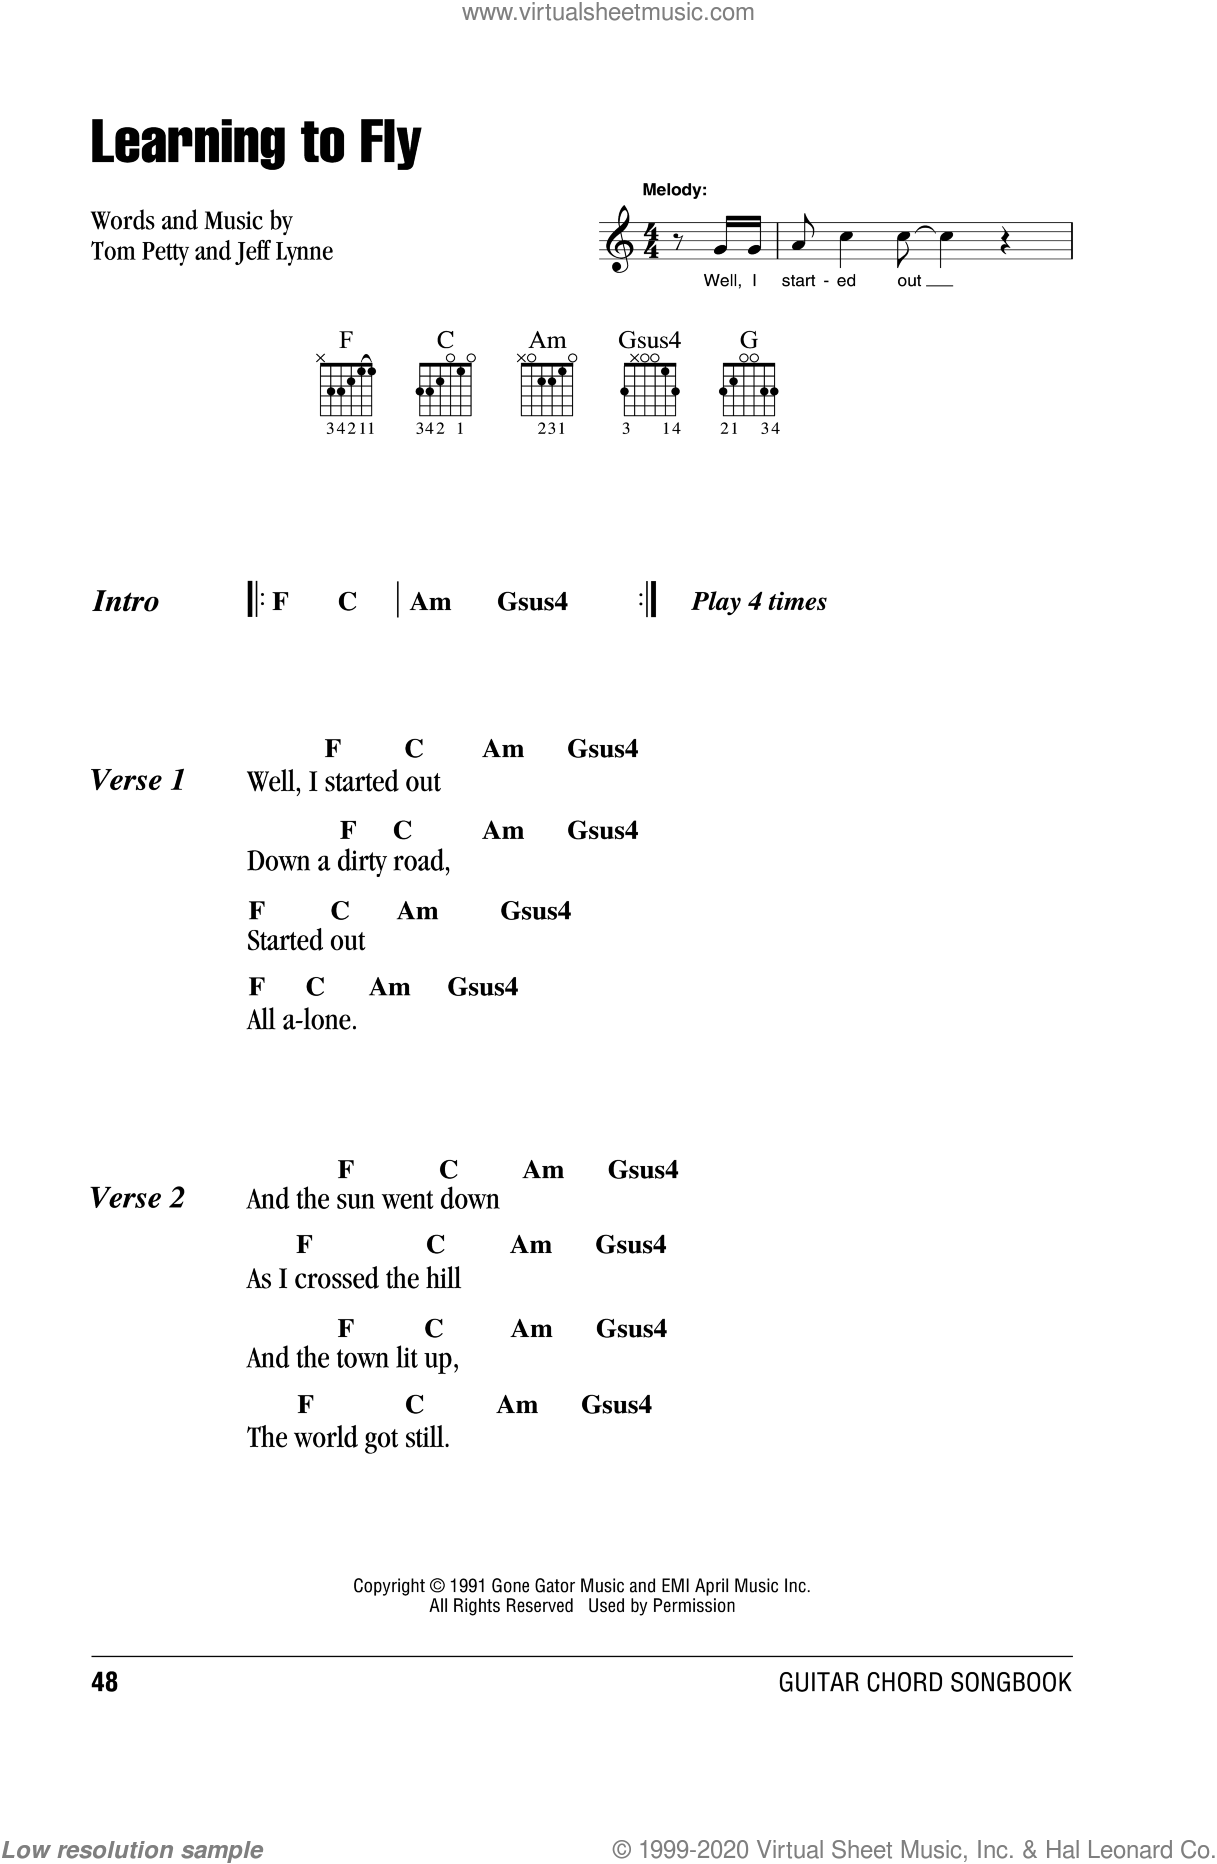 Learning To Fly sheet music for guitar (chords) by Tom Petty And The Heartbreakers, Jeff Lynne and Tom Petty, intermediate. Score Image Preview.